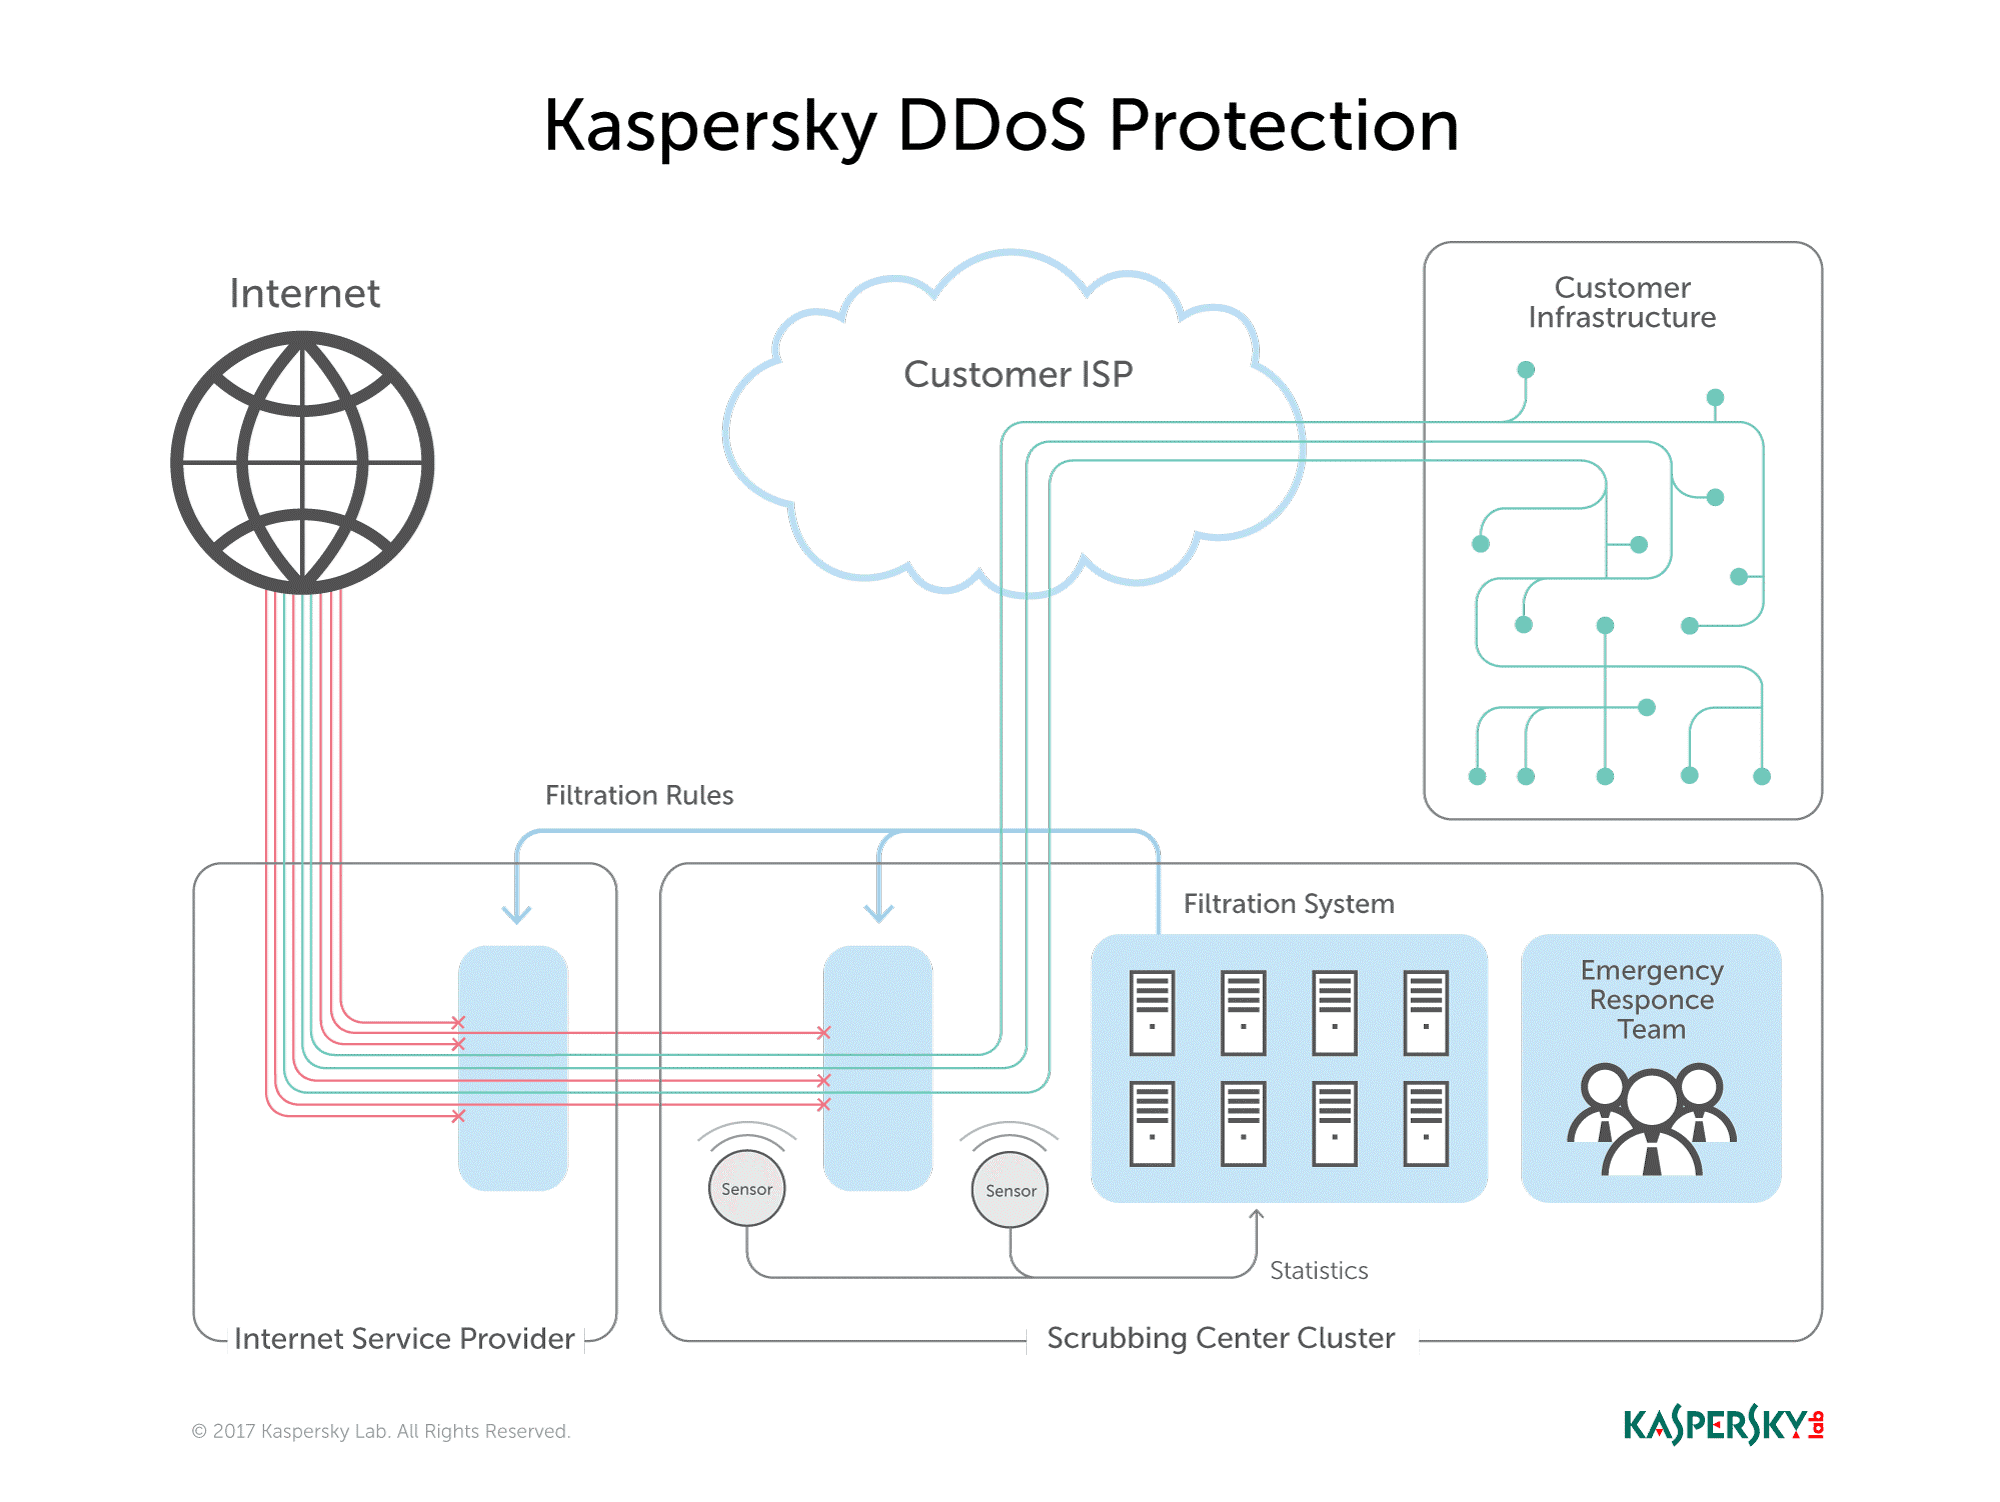 kaspersky-ddos-protection-1.png